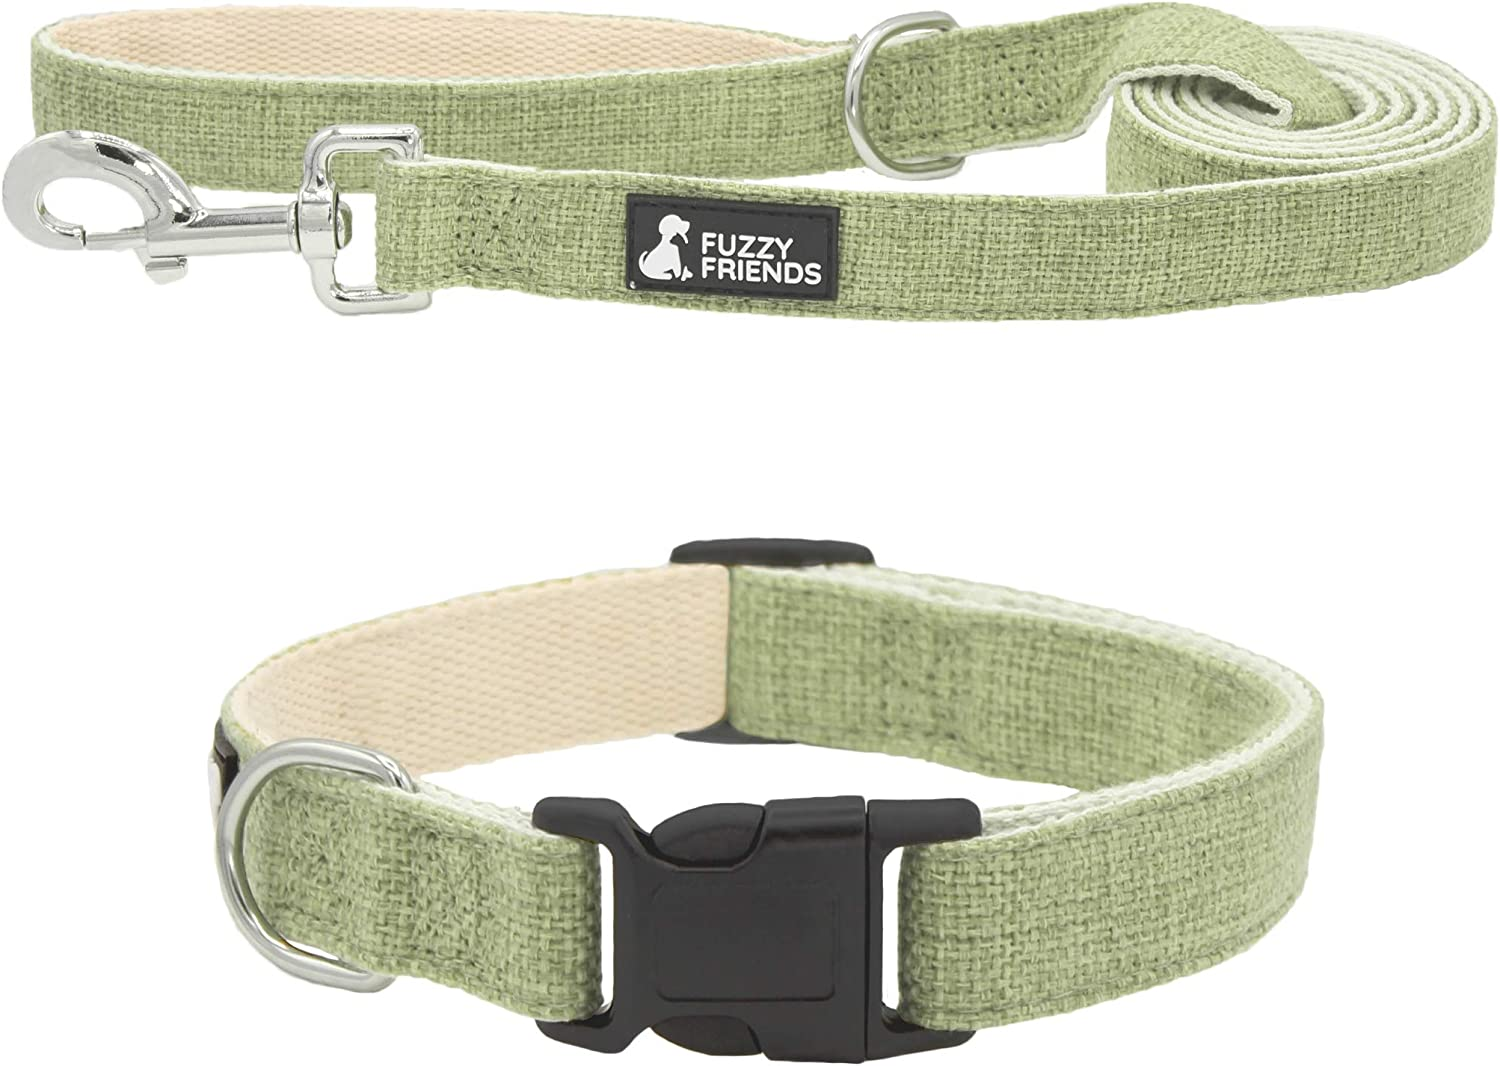 Lt Green Hemp Dog Collar. Natural, Chemical Free Dog Collars for Your Fuzzy Friends with Sensitive Skin. an Environment Friendly Collar Made of Sustainable Hemp with no Harsh Dyes or Chemicals.